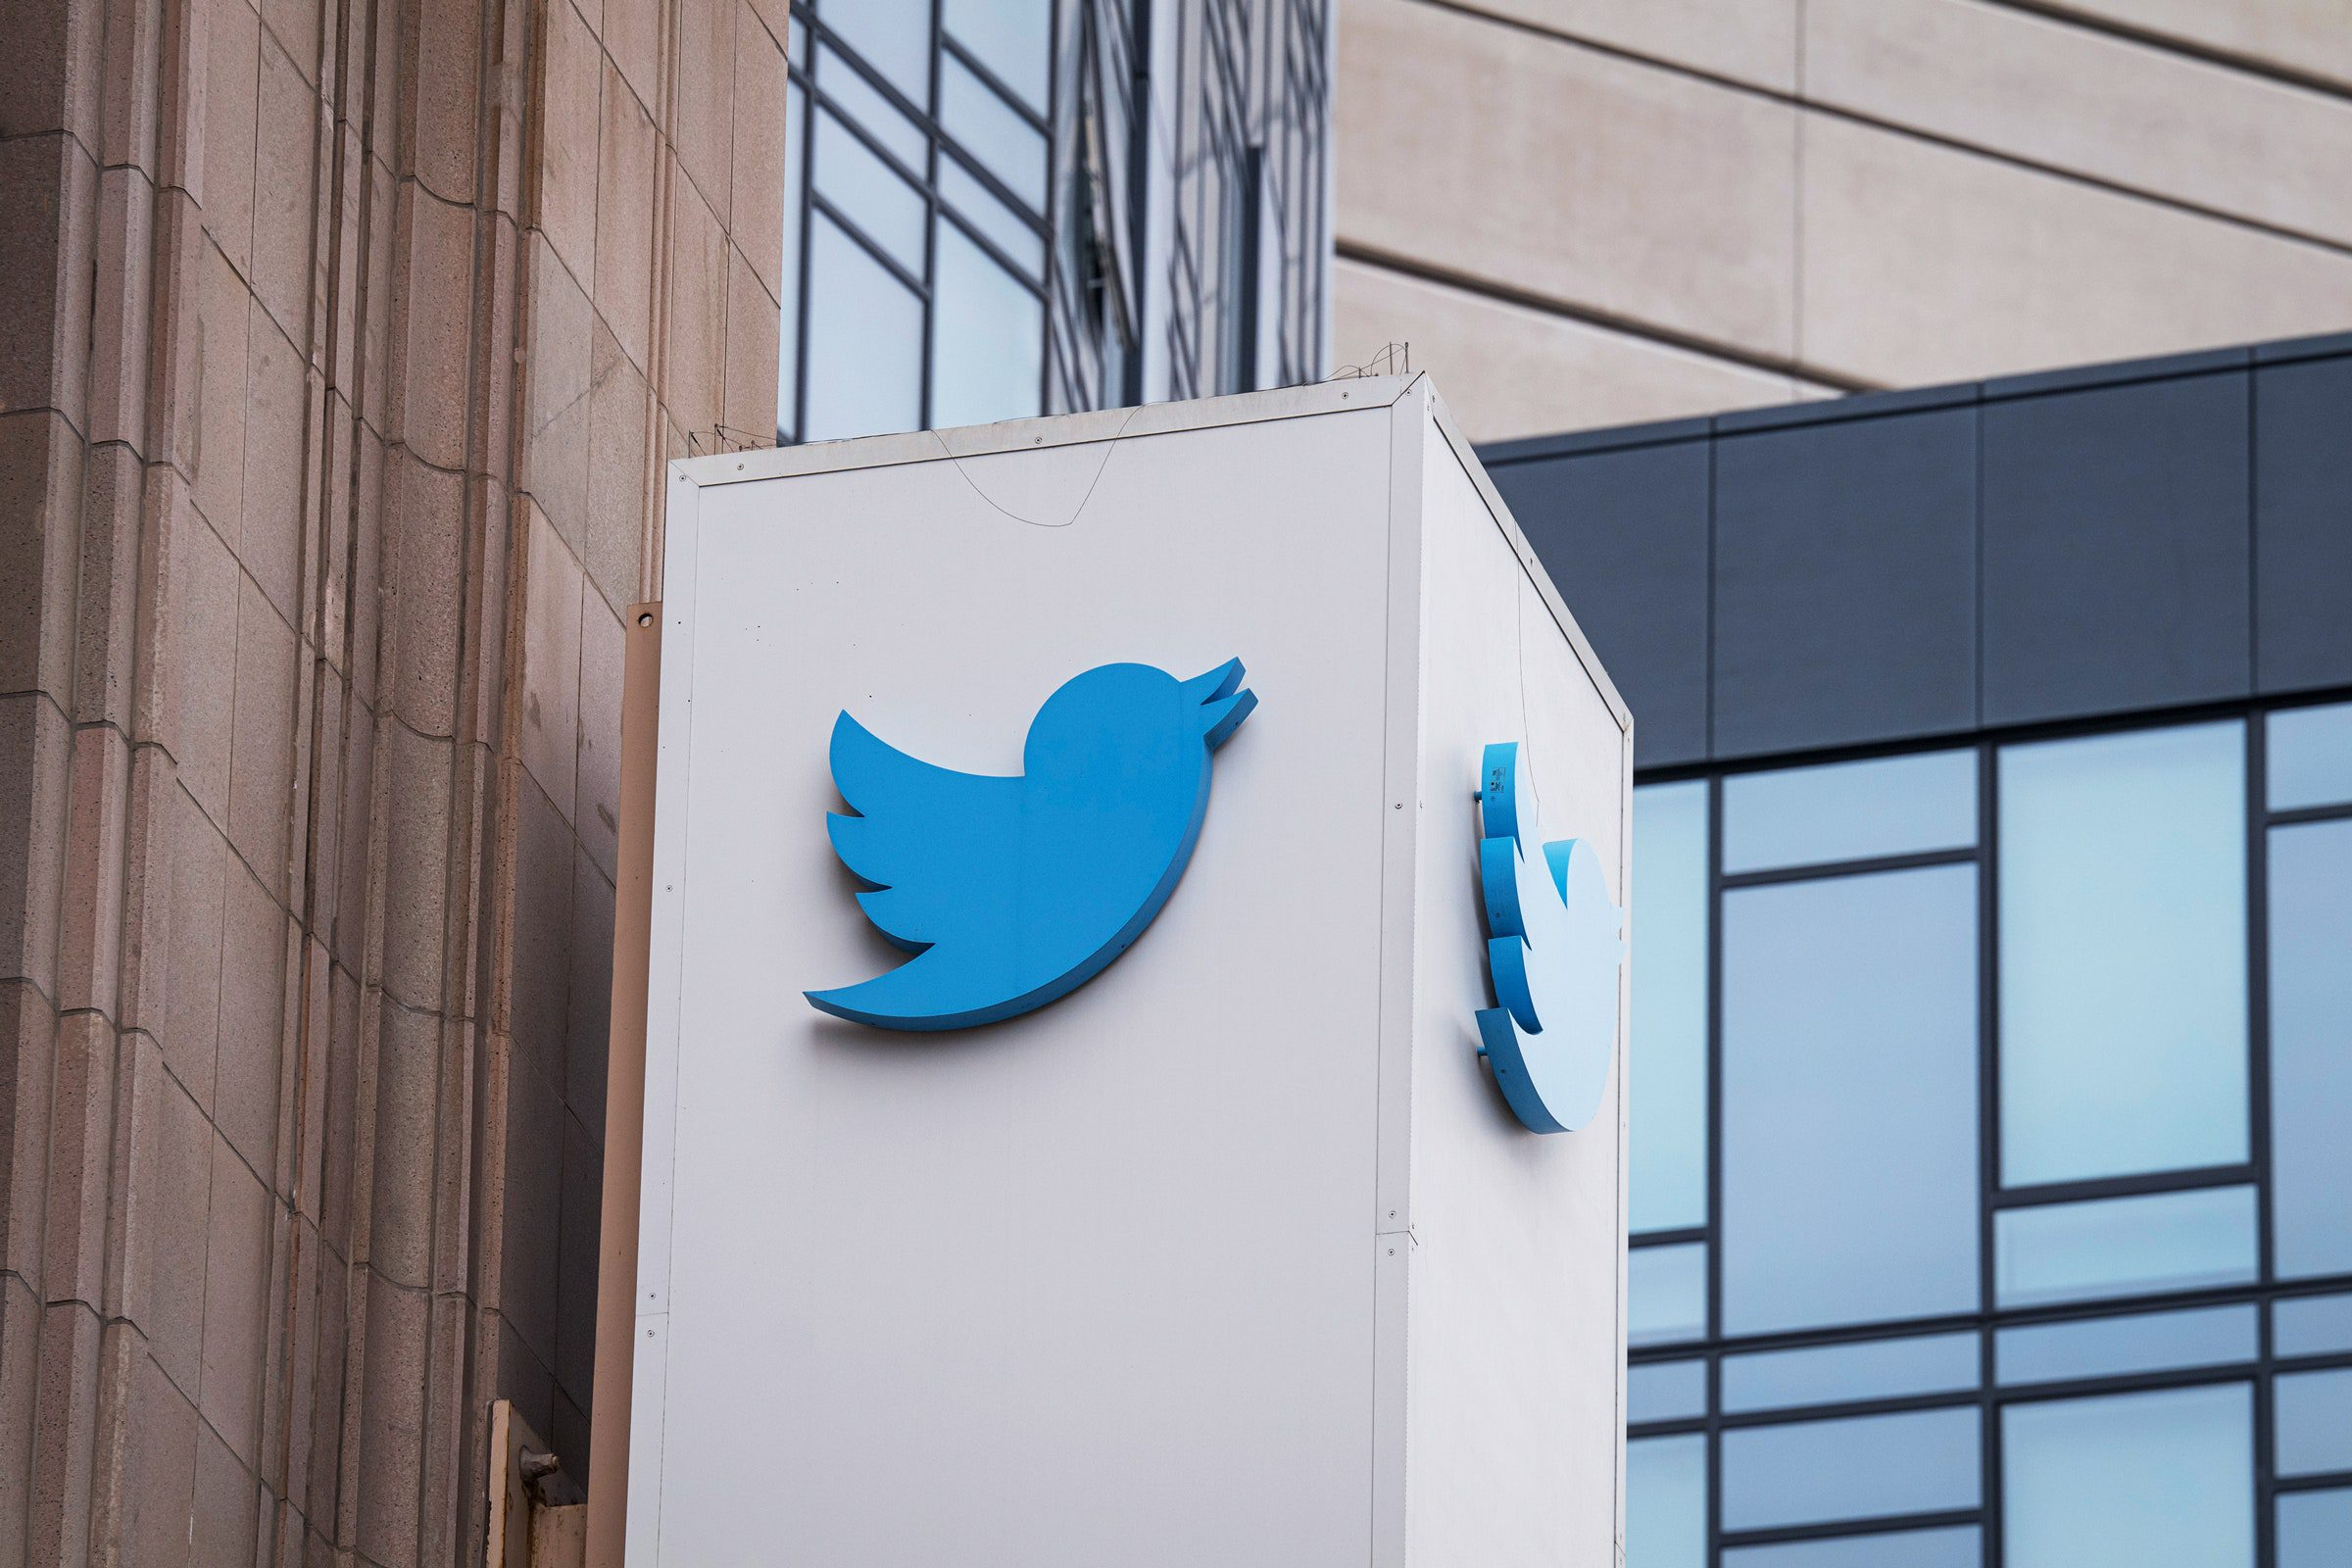 Twitter hits pause on verification requests